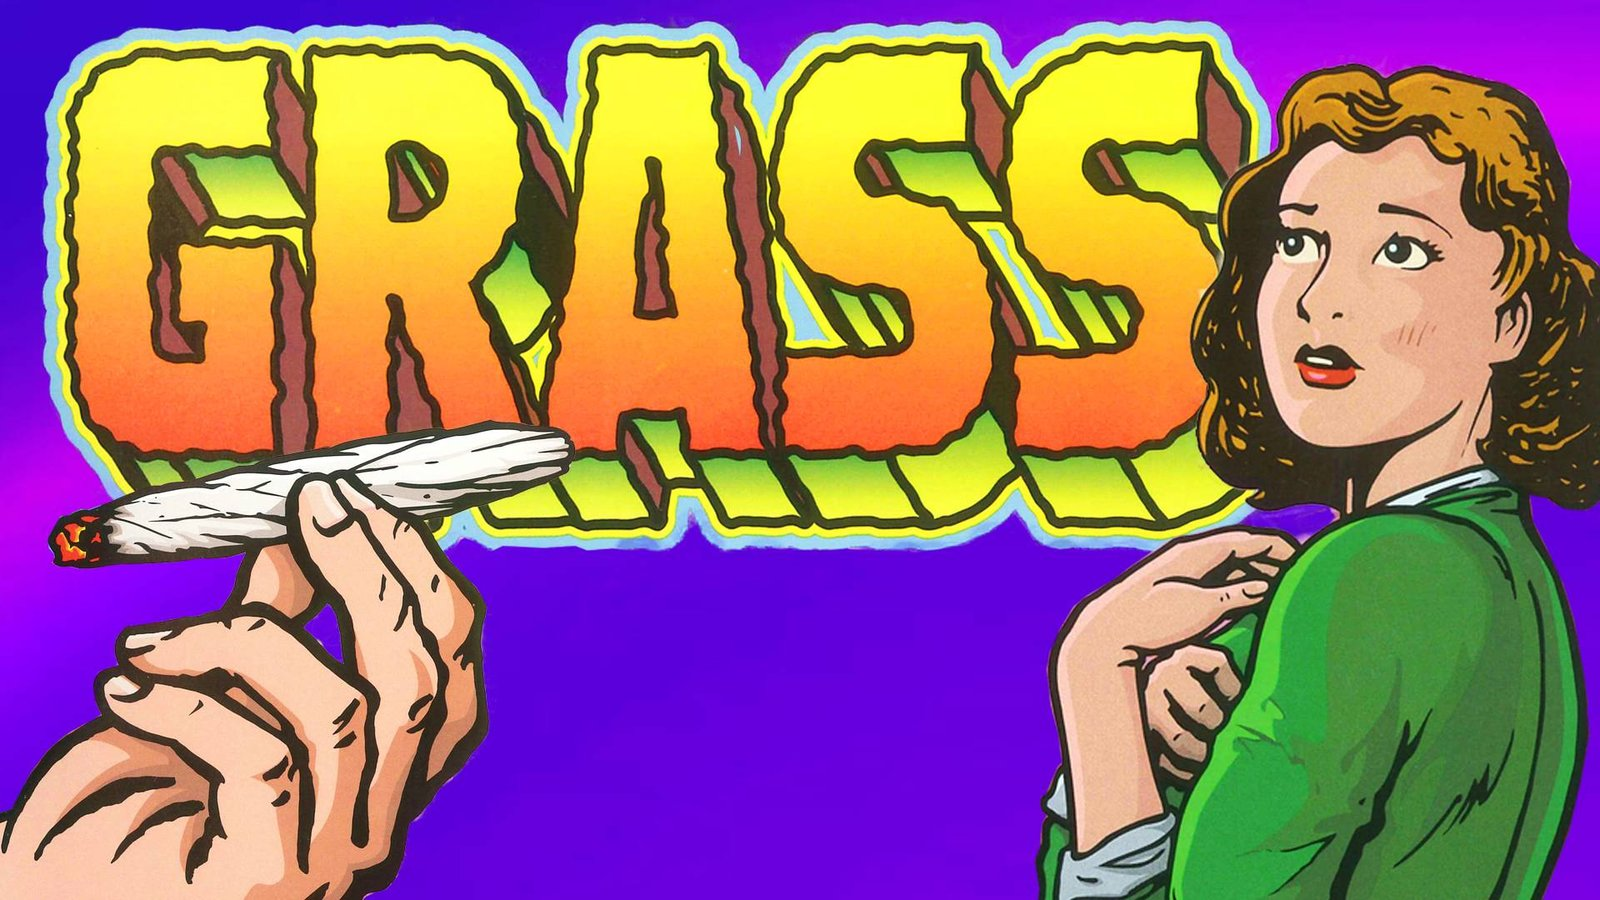 Grass - A History of Recreational Marijuana Use in the Late 20th Century